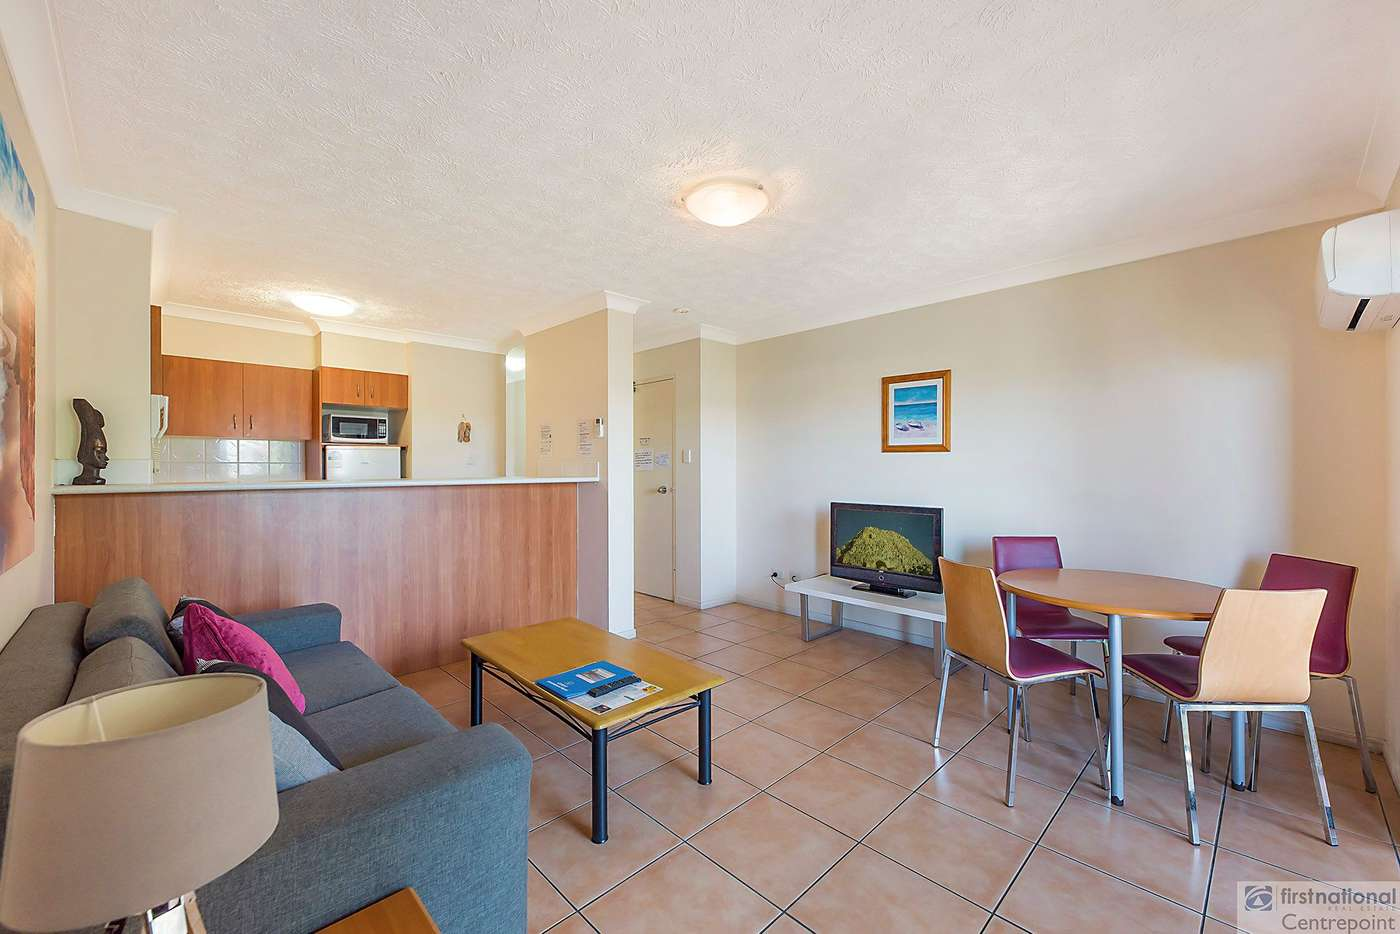 Main view of Homely apartment listing, 24/38 Petrel Ave, Mermaid Beach QLD 4218